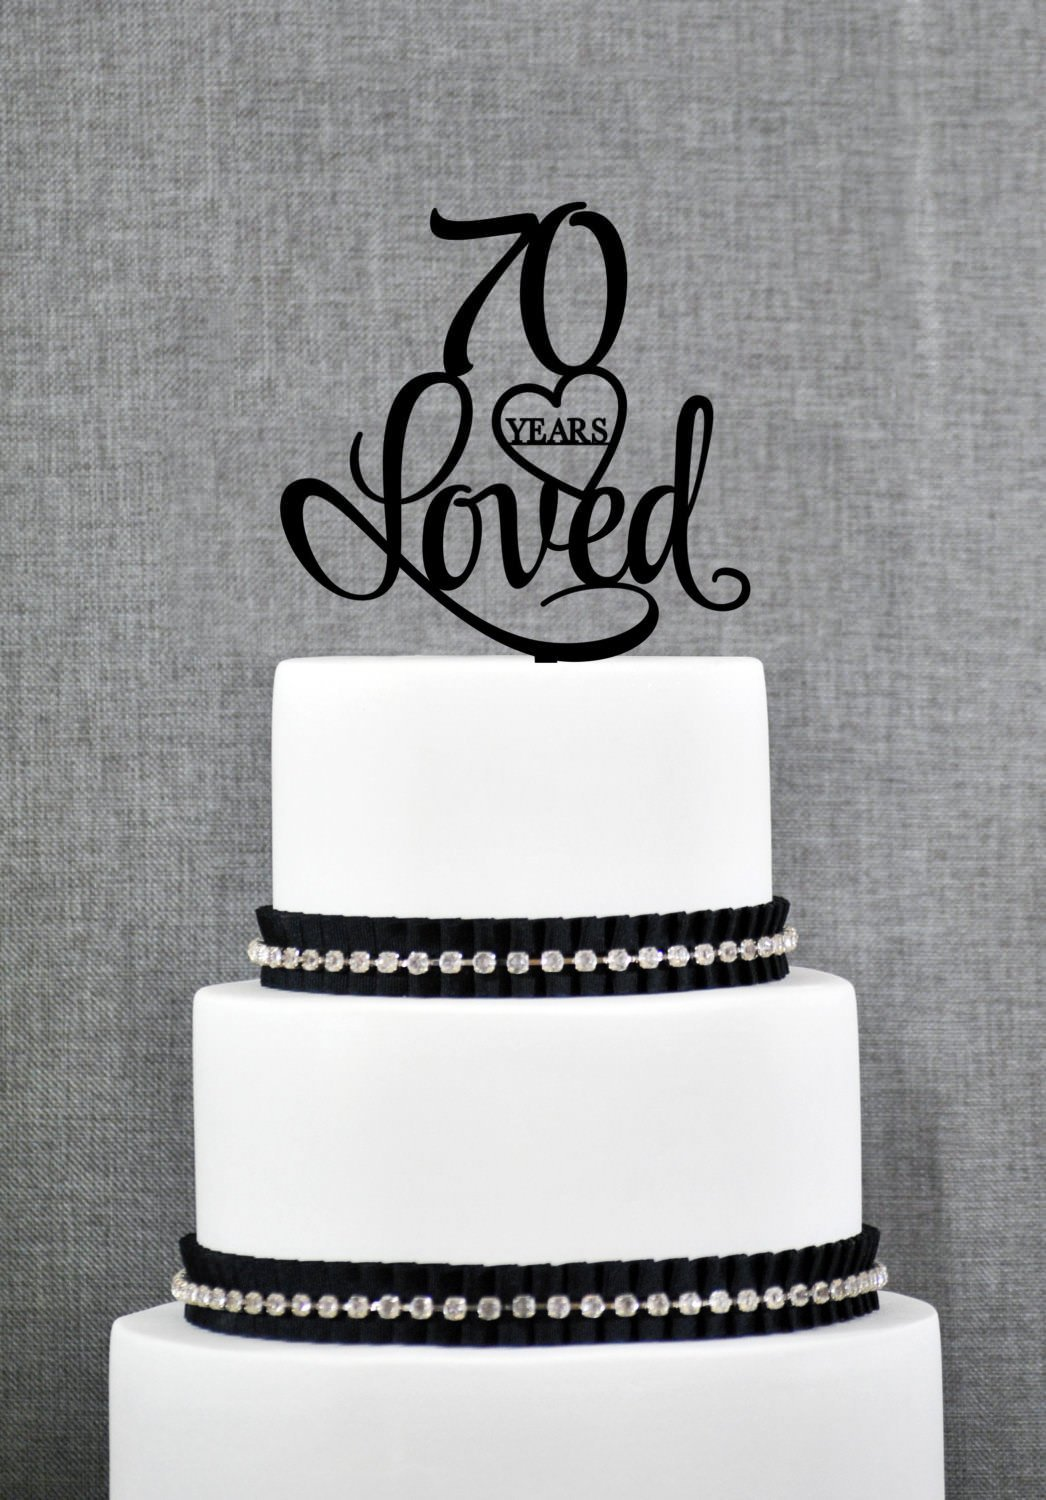 70 Years Loved Birthday Cake Topper Elegant 70th Anniversary Gift